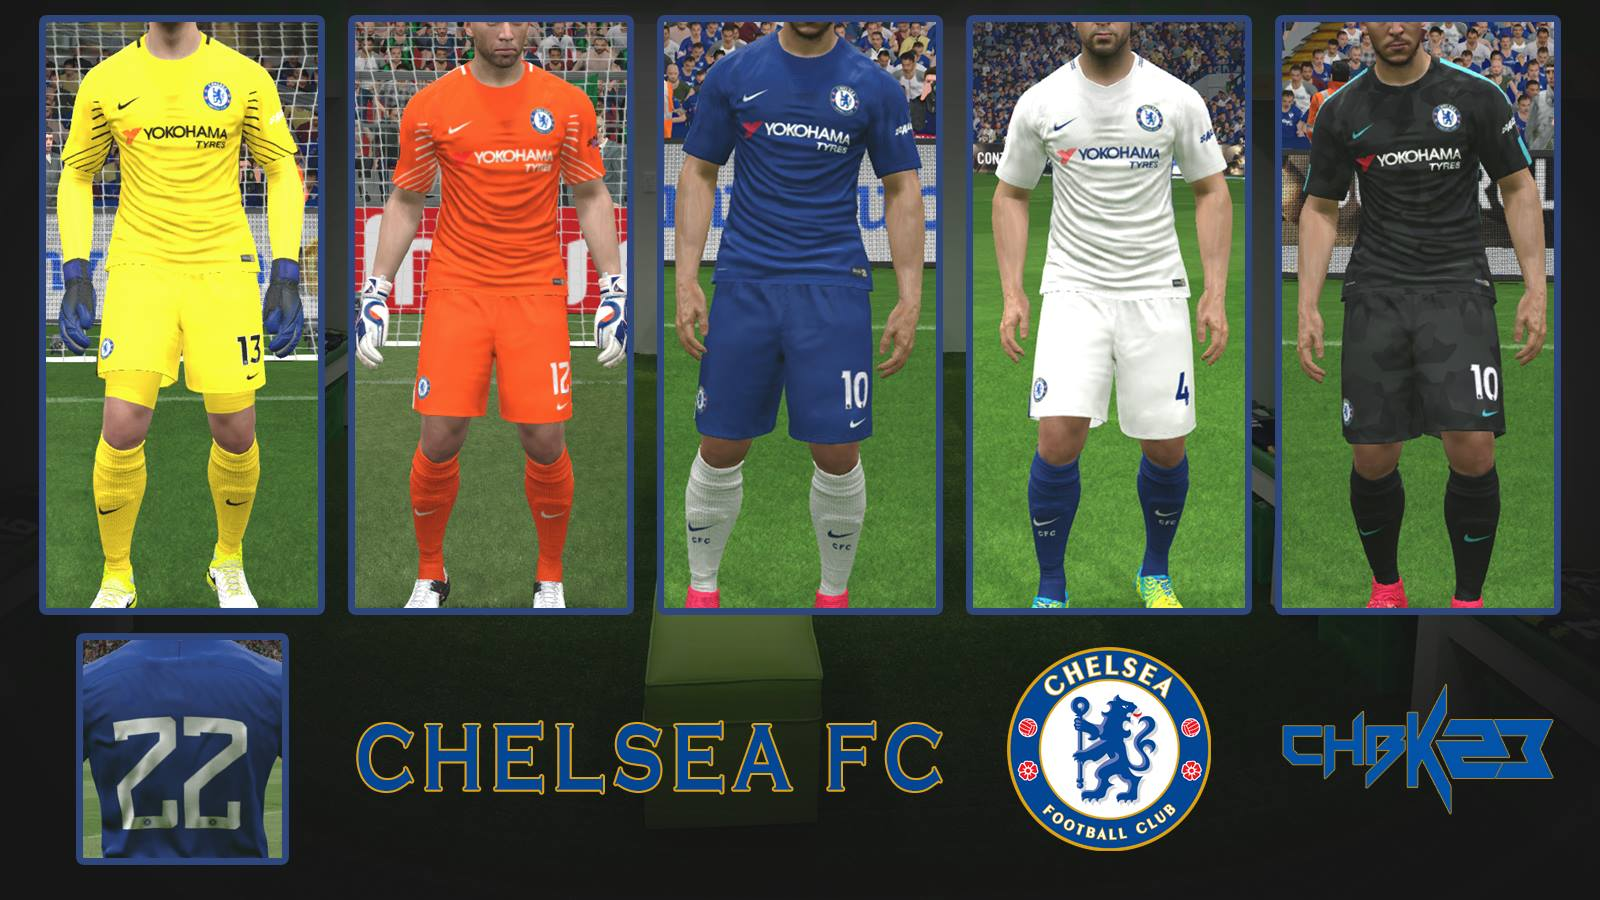 Kitset 2017/18 Chelsea Football Club